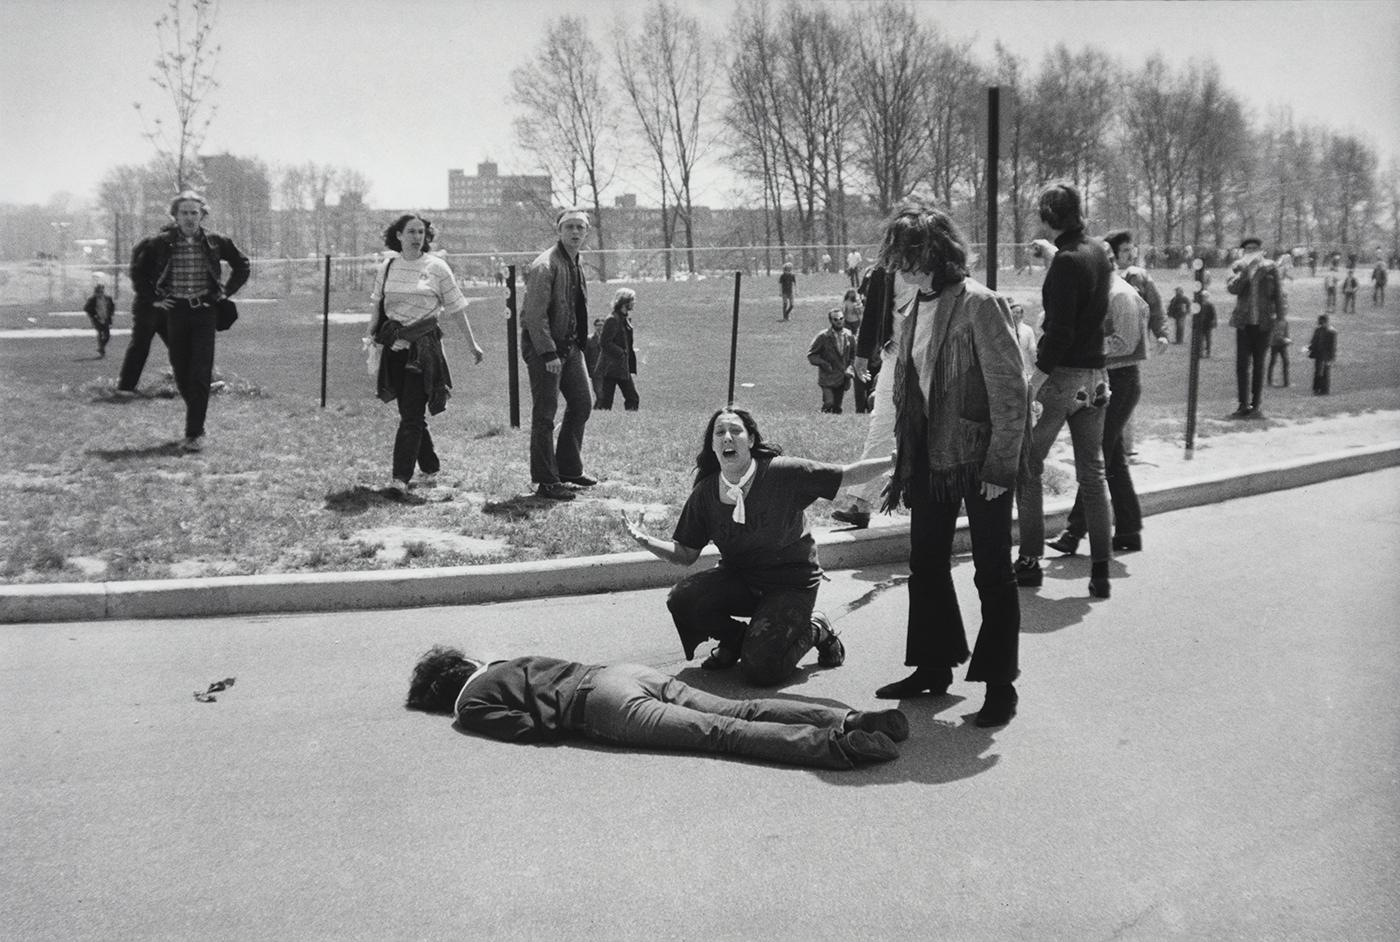 Mary Ann Vecchio kneels over the body of fellow student Jeffrey Miller, who was killed by Ohio National Guard troops during an antiwar demonstration at Kent State University. May 4, 1970. Photo: John Filo/Getty Images